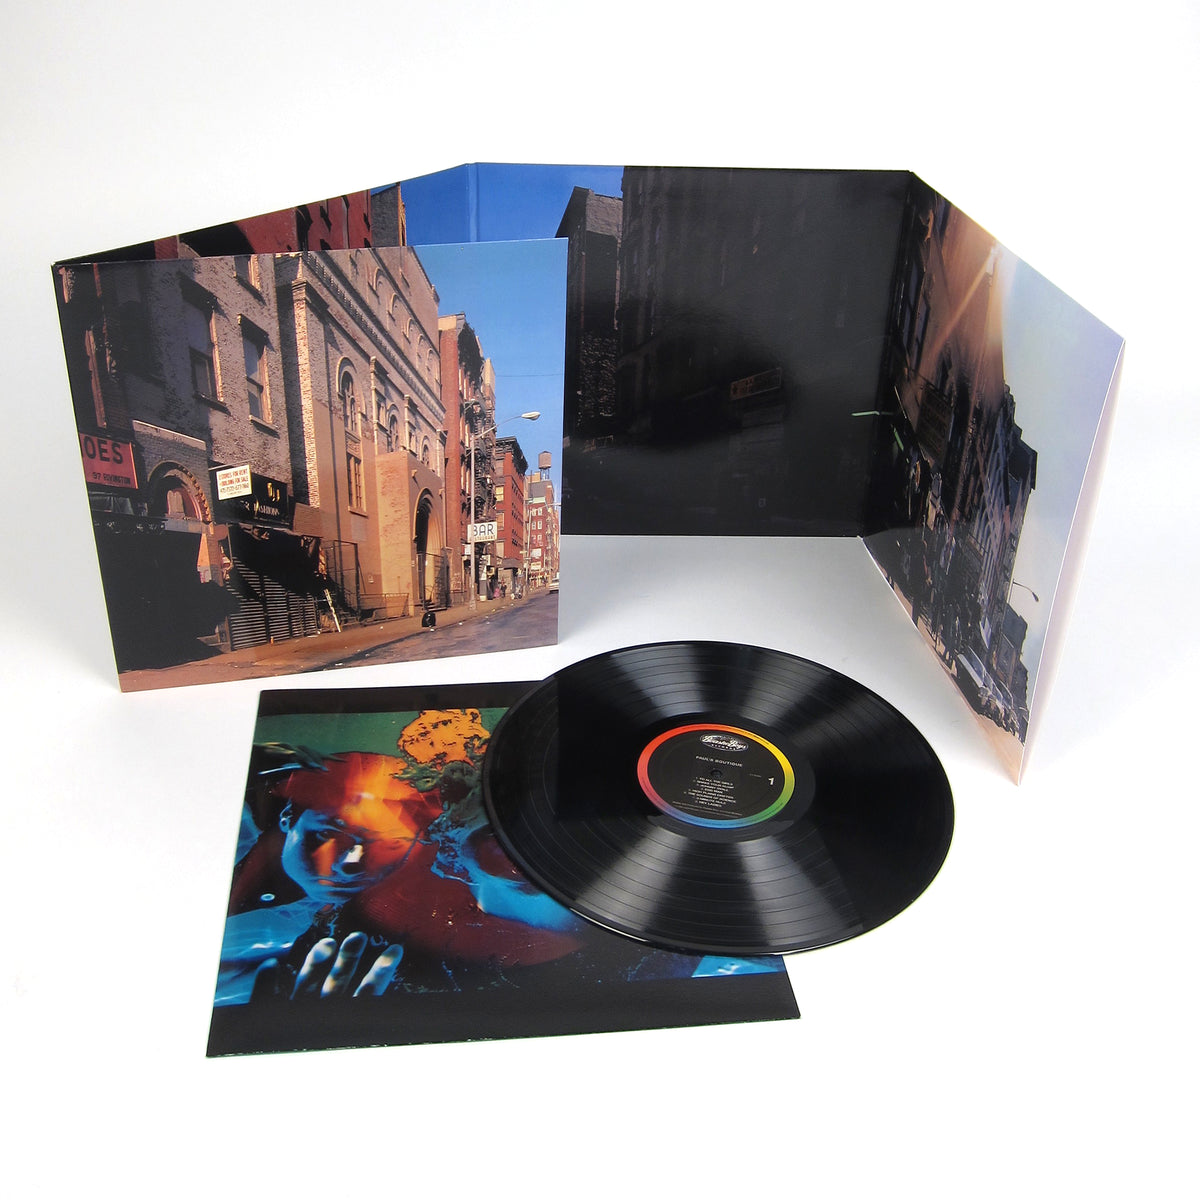 Beastie Boys: Paul's Boutique - 20th Anniversary Edition (180g) Vinyl LP